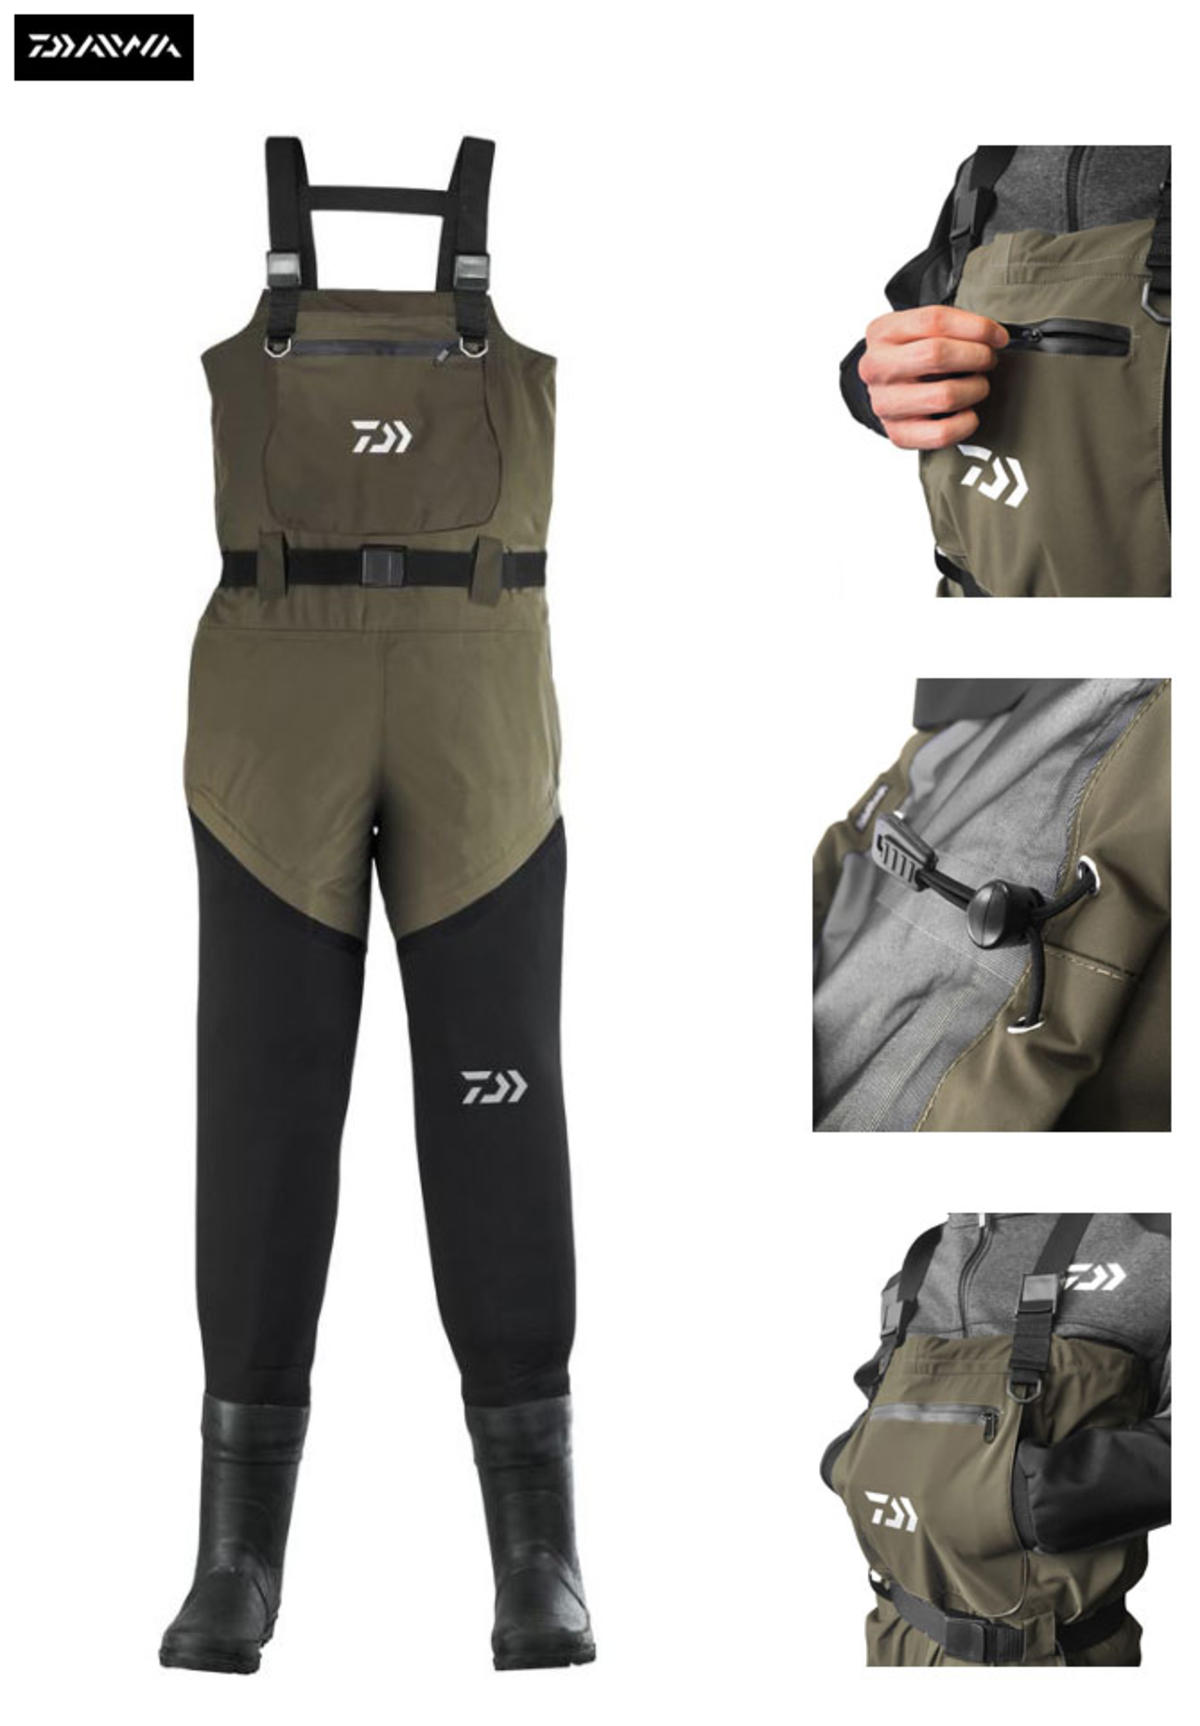 New Daiwa Hybrid Lightweight Breathable / Neoprene Chest Waders - All Sizes